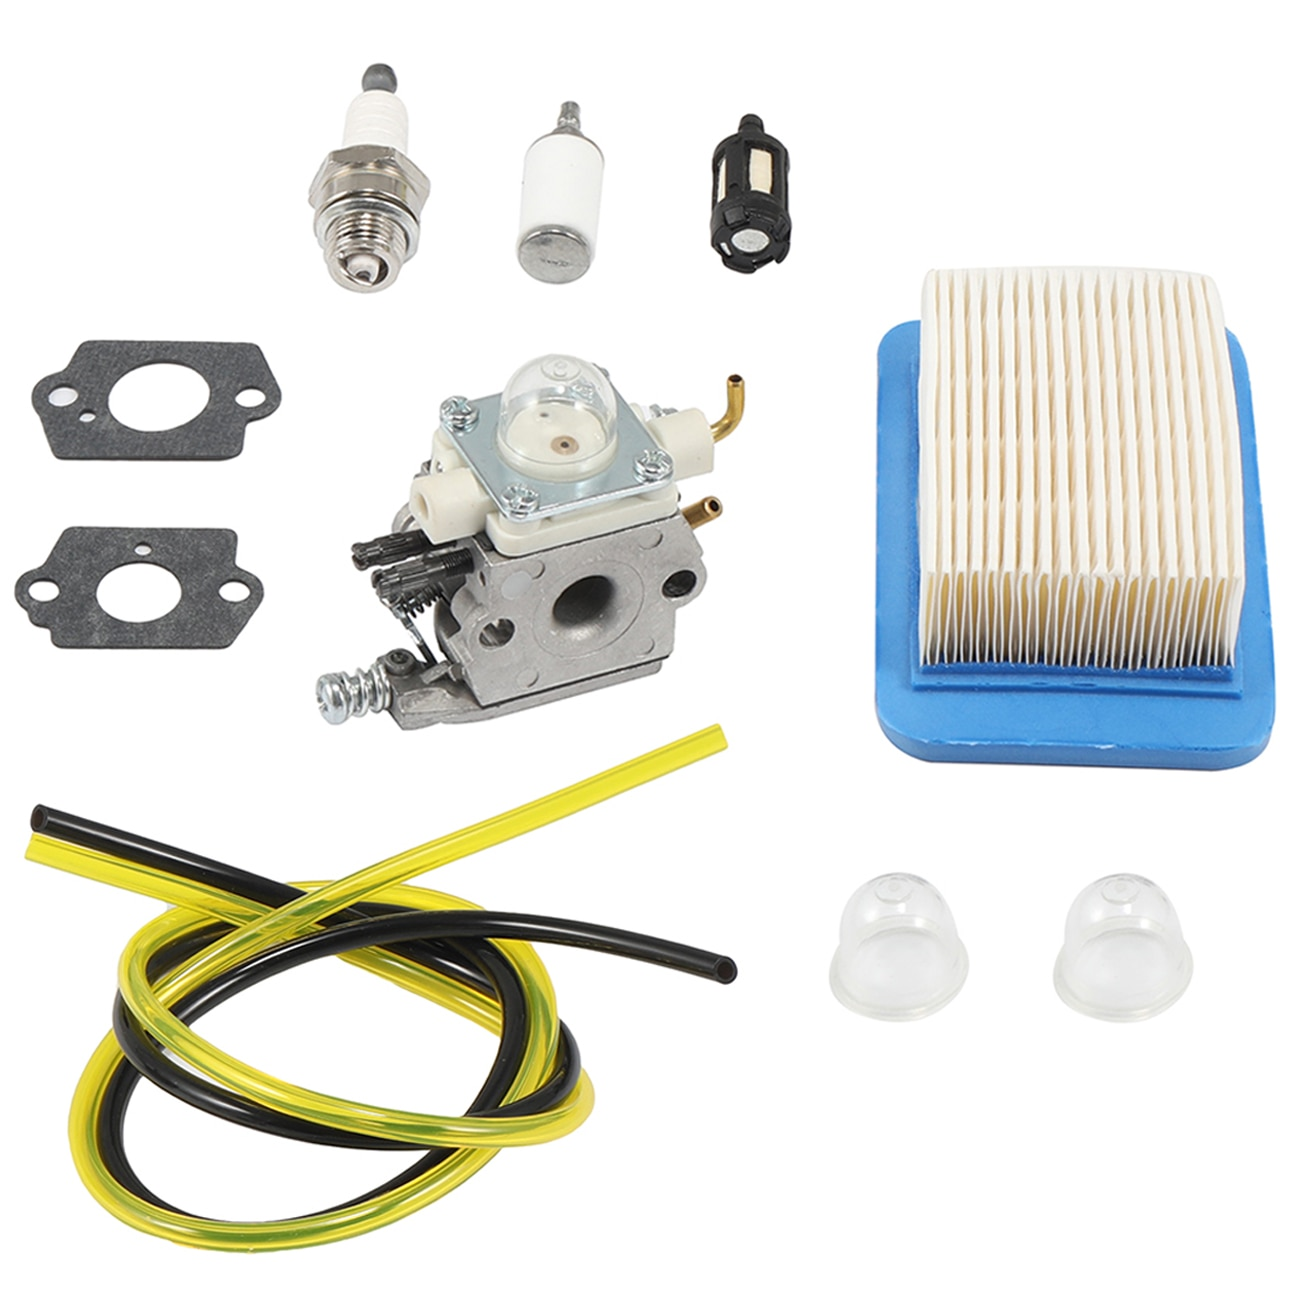 Carburetor Carb Air Filter Kit Echo PB-580 PB-580T WTA-35 Echo Backpack Blower